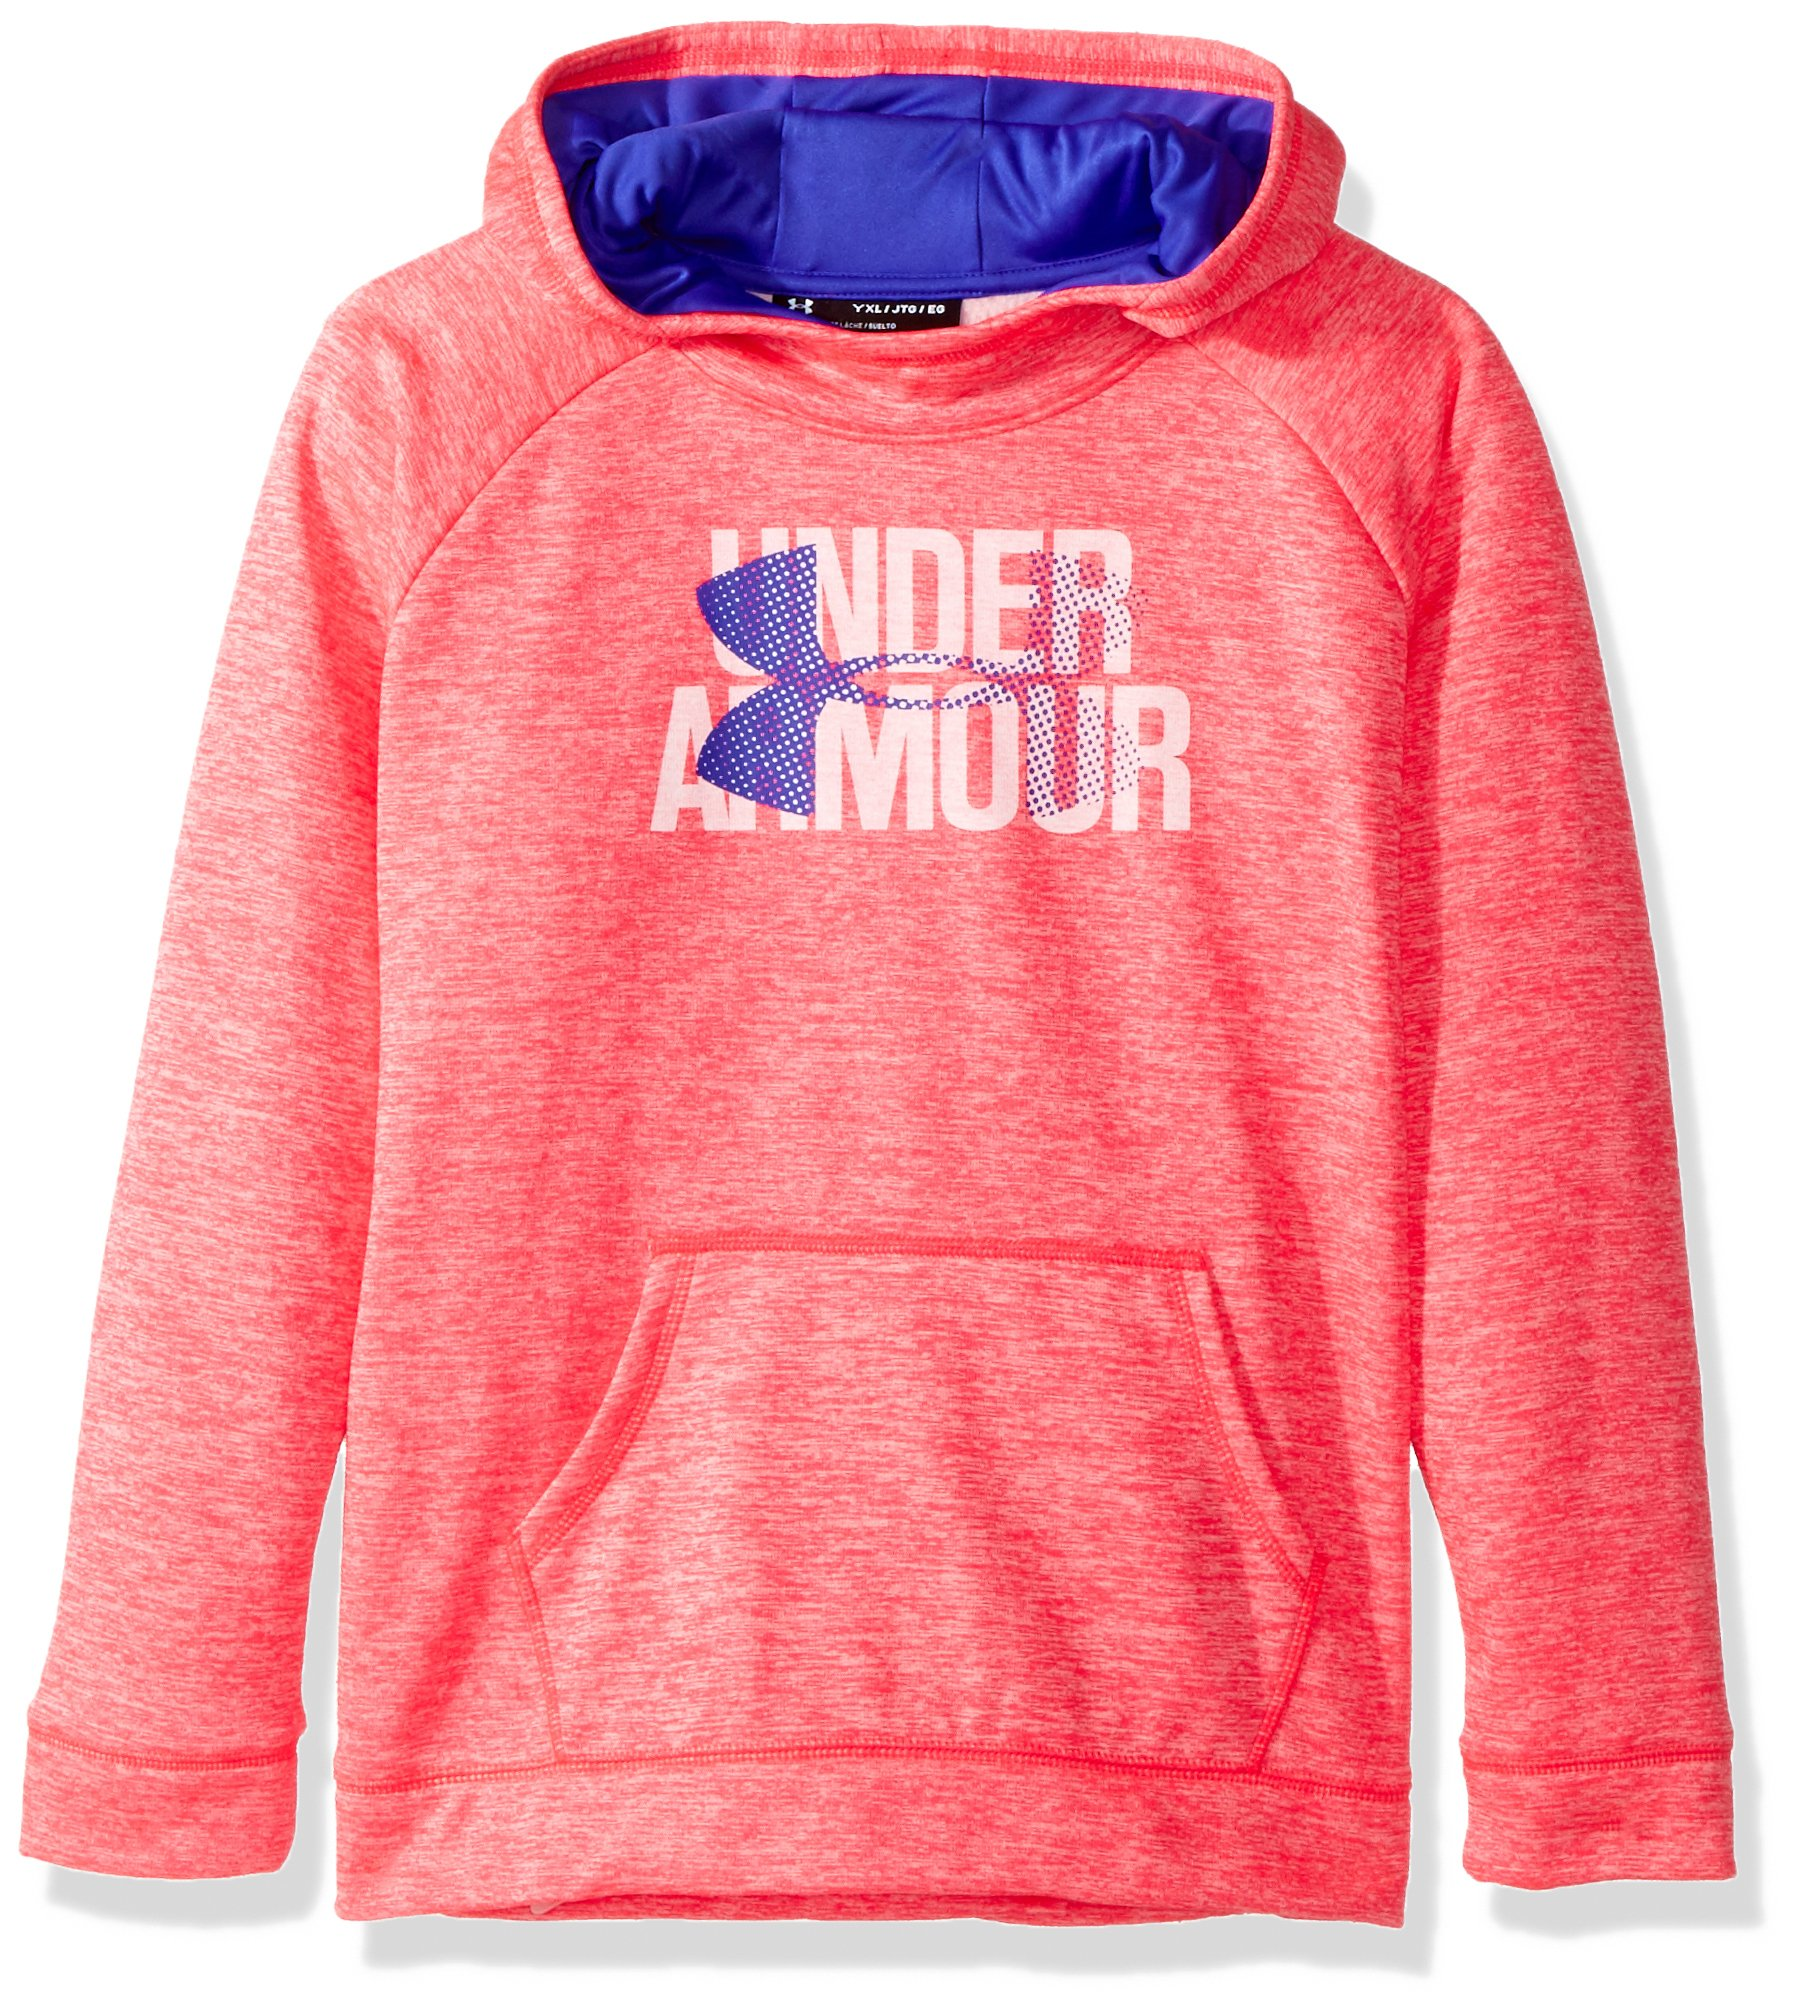 Under Armour Girls' Armour Fleece Big Logo Printed Hoodie, Penta Pink (975), Youth X-Large by Under Armour